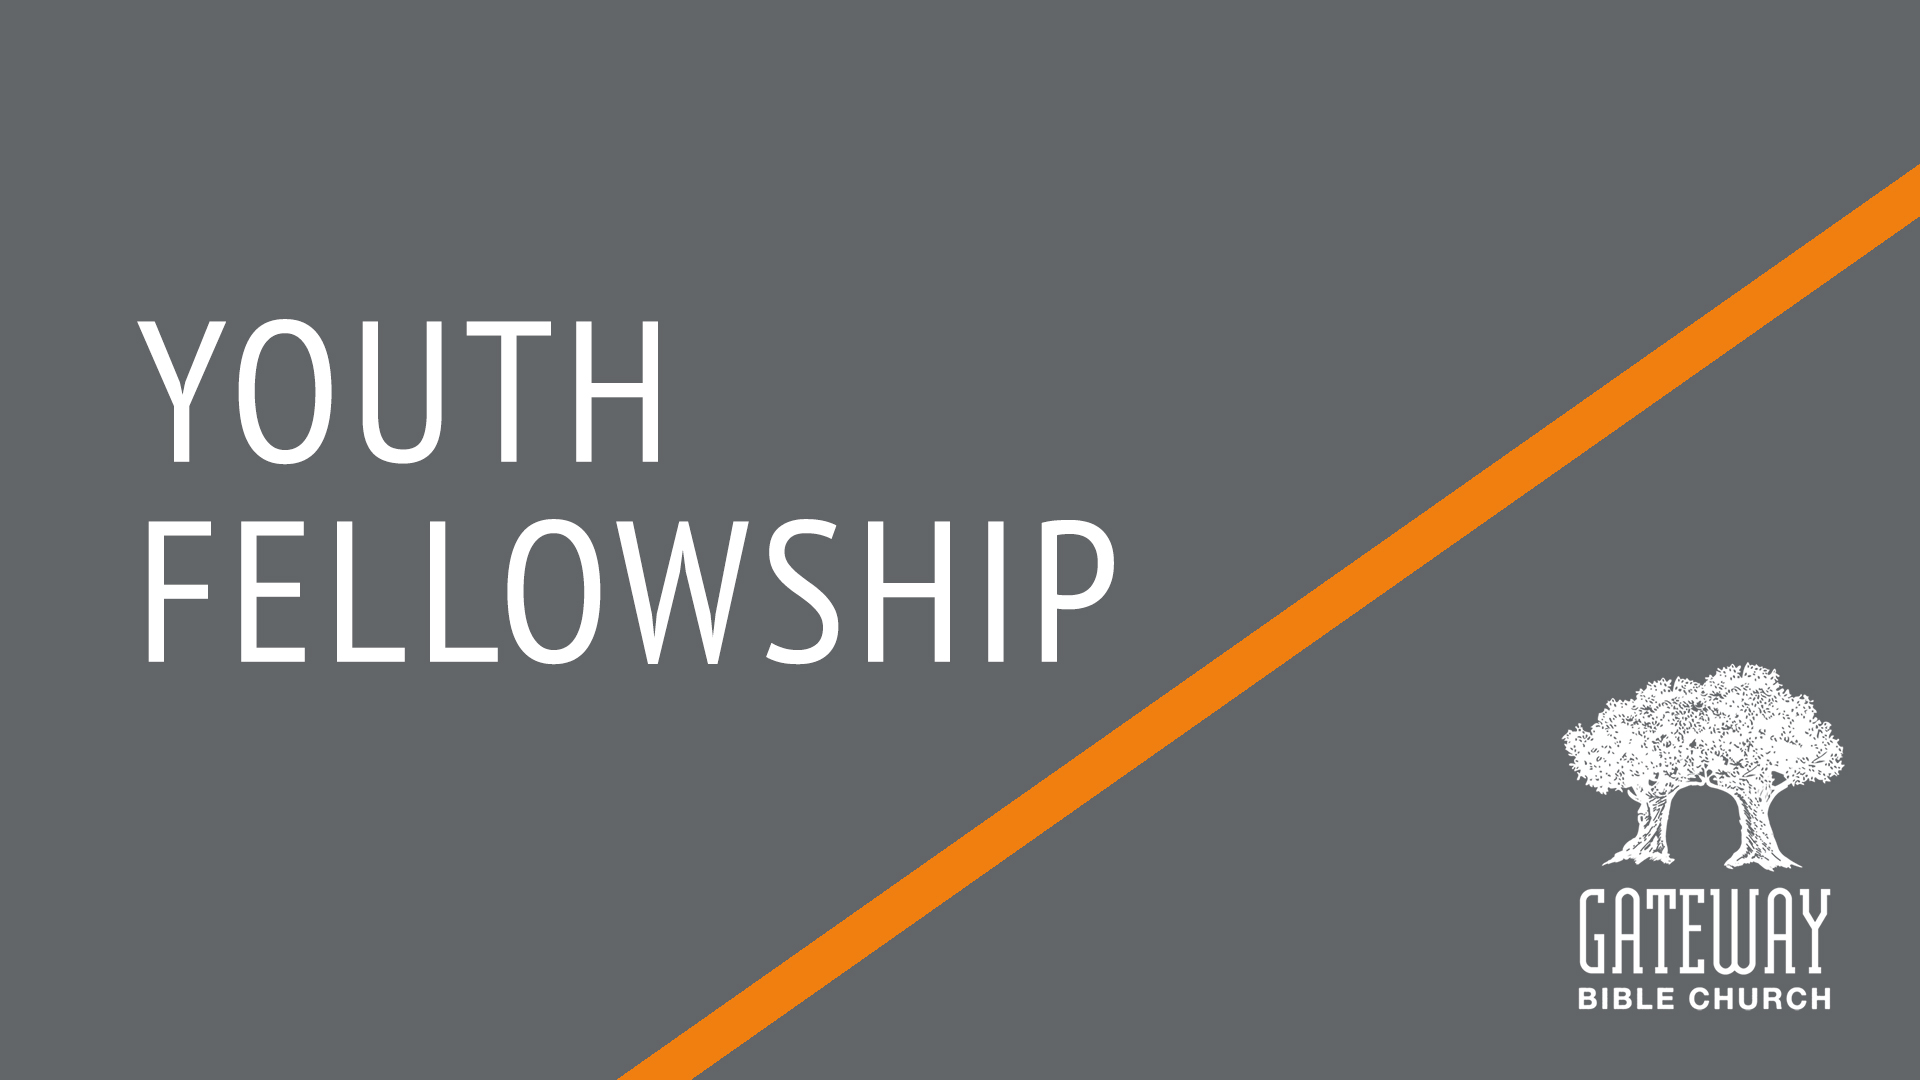 Youth Fellowship copy image